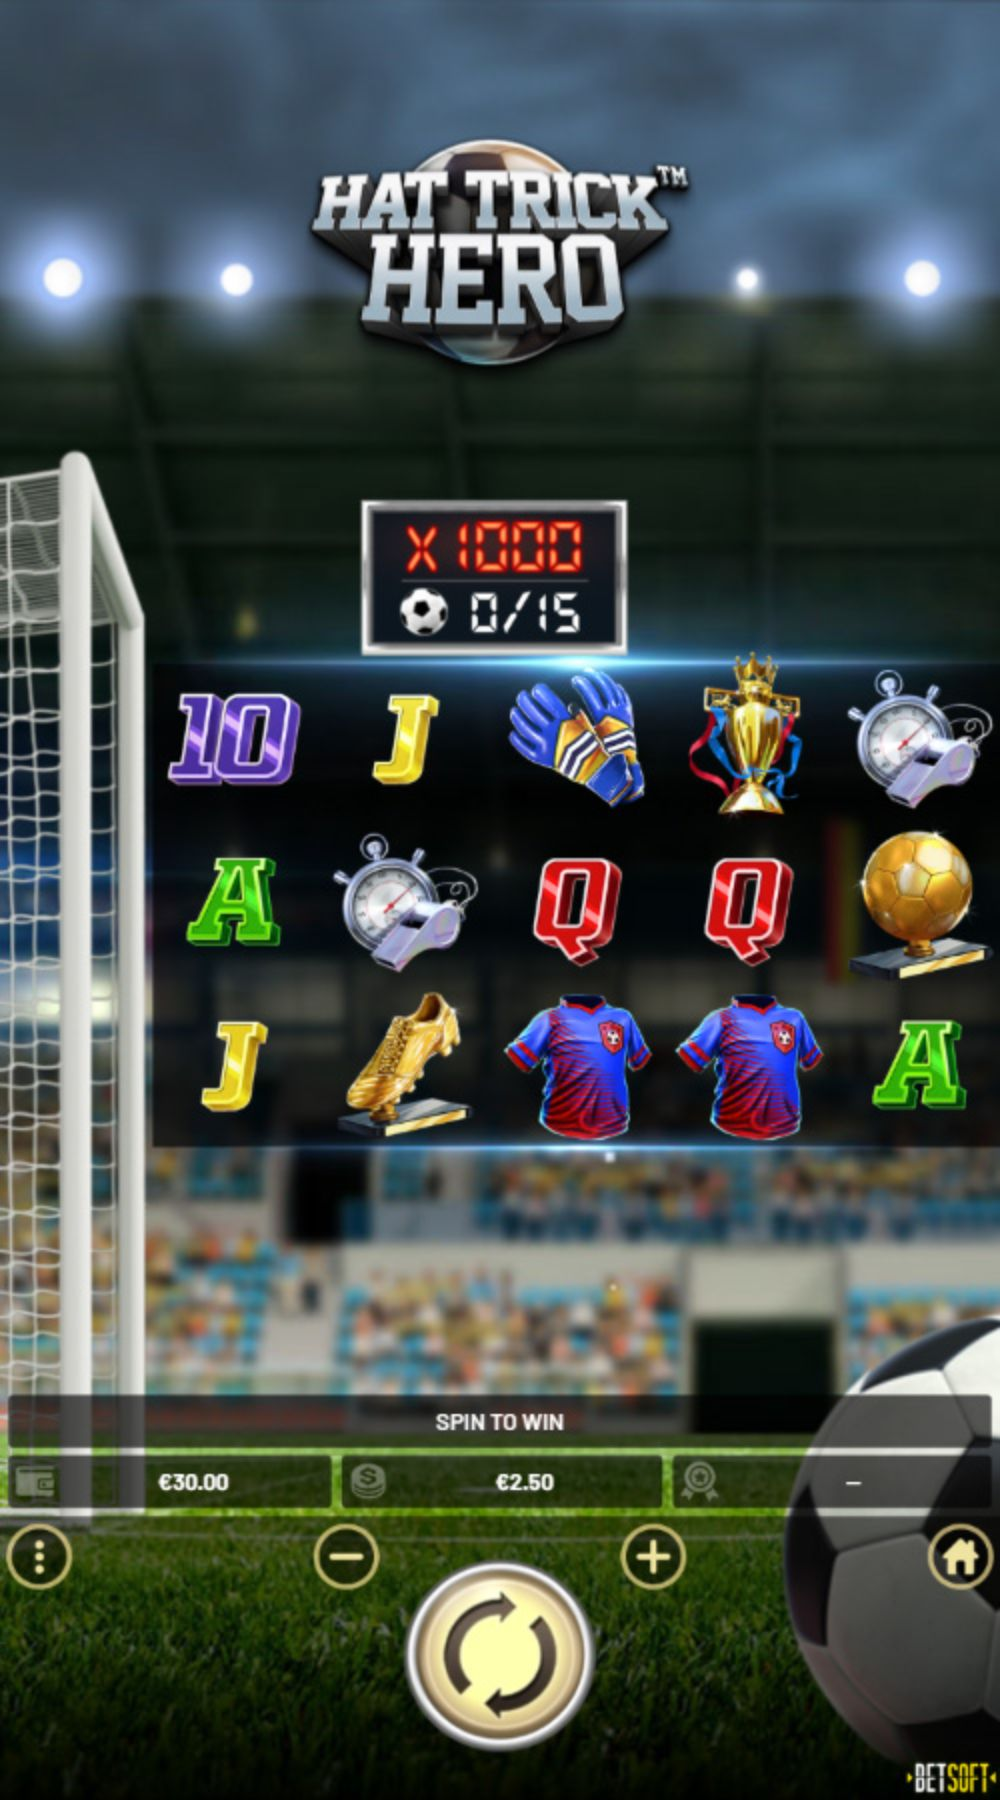 hat trick hero slot by betsoft